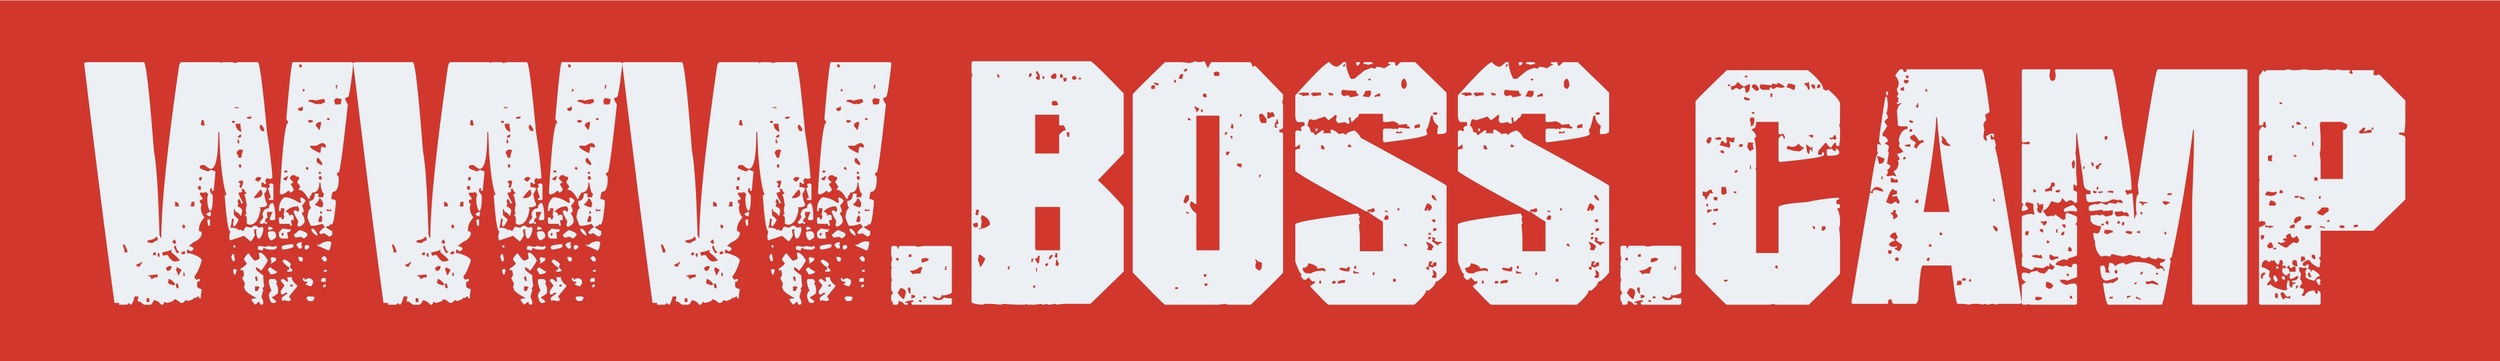 Find out how to be a boss like a boss at www.boss.camp Jpeg